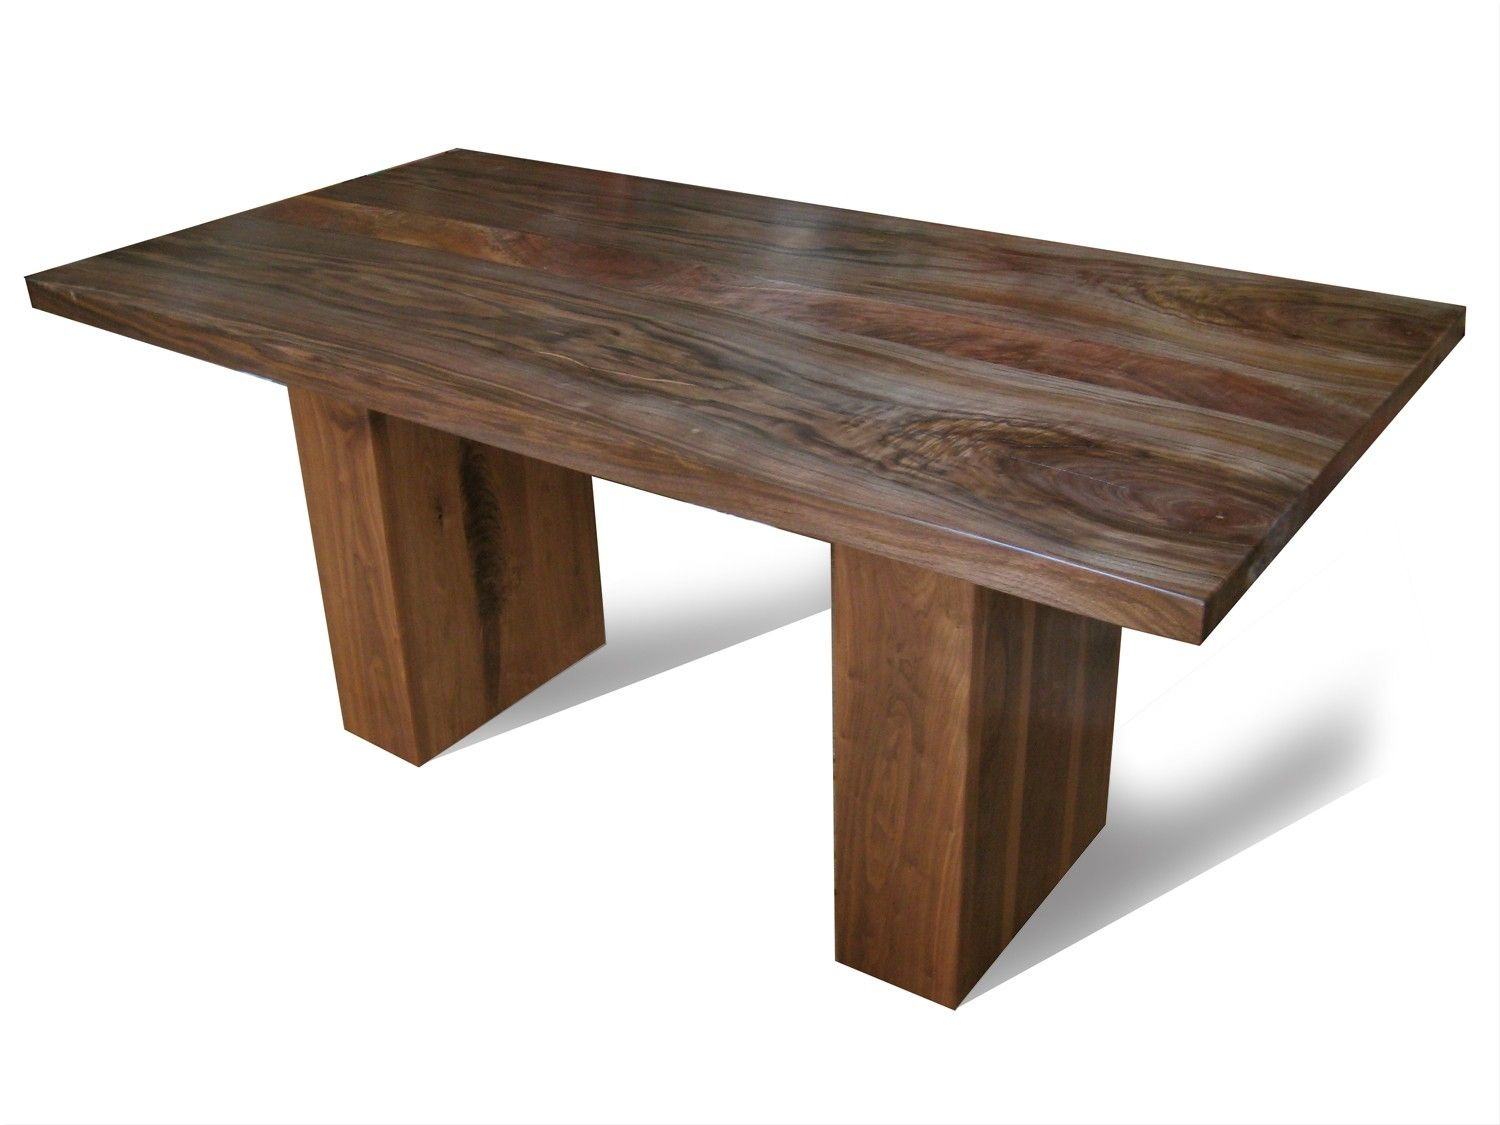 Custom Made Walnut Dining Table With Pedestal Legs By Fix Studio